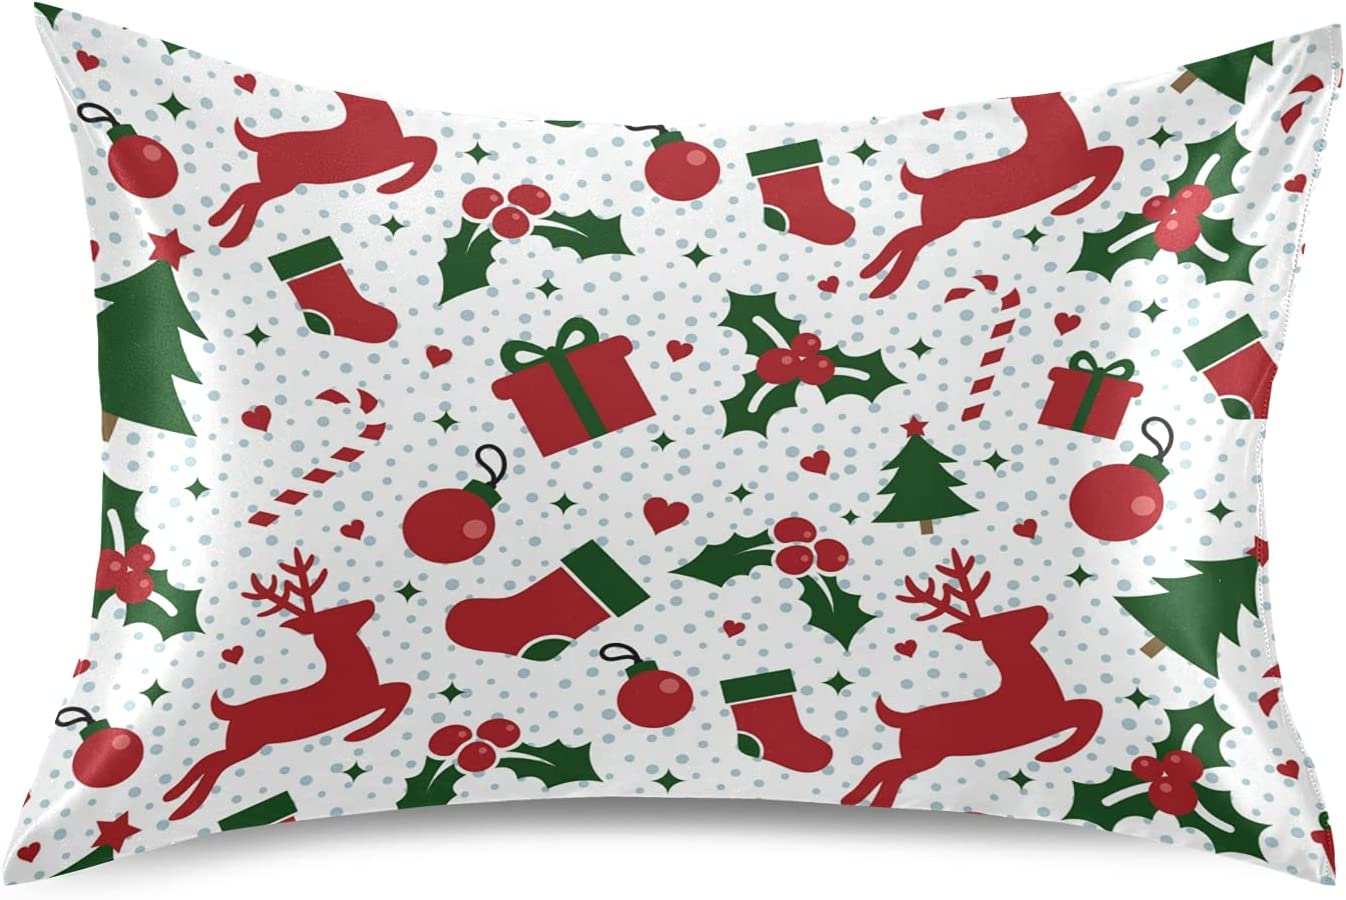 xigua Christmas Satin Pillowcase for Hair specialty shop Skin 2021 autumn and winter new Cooling Pil